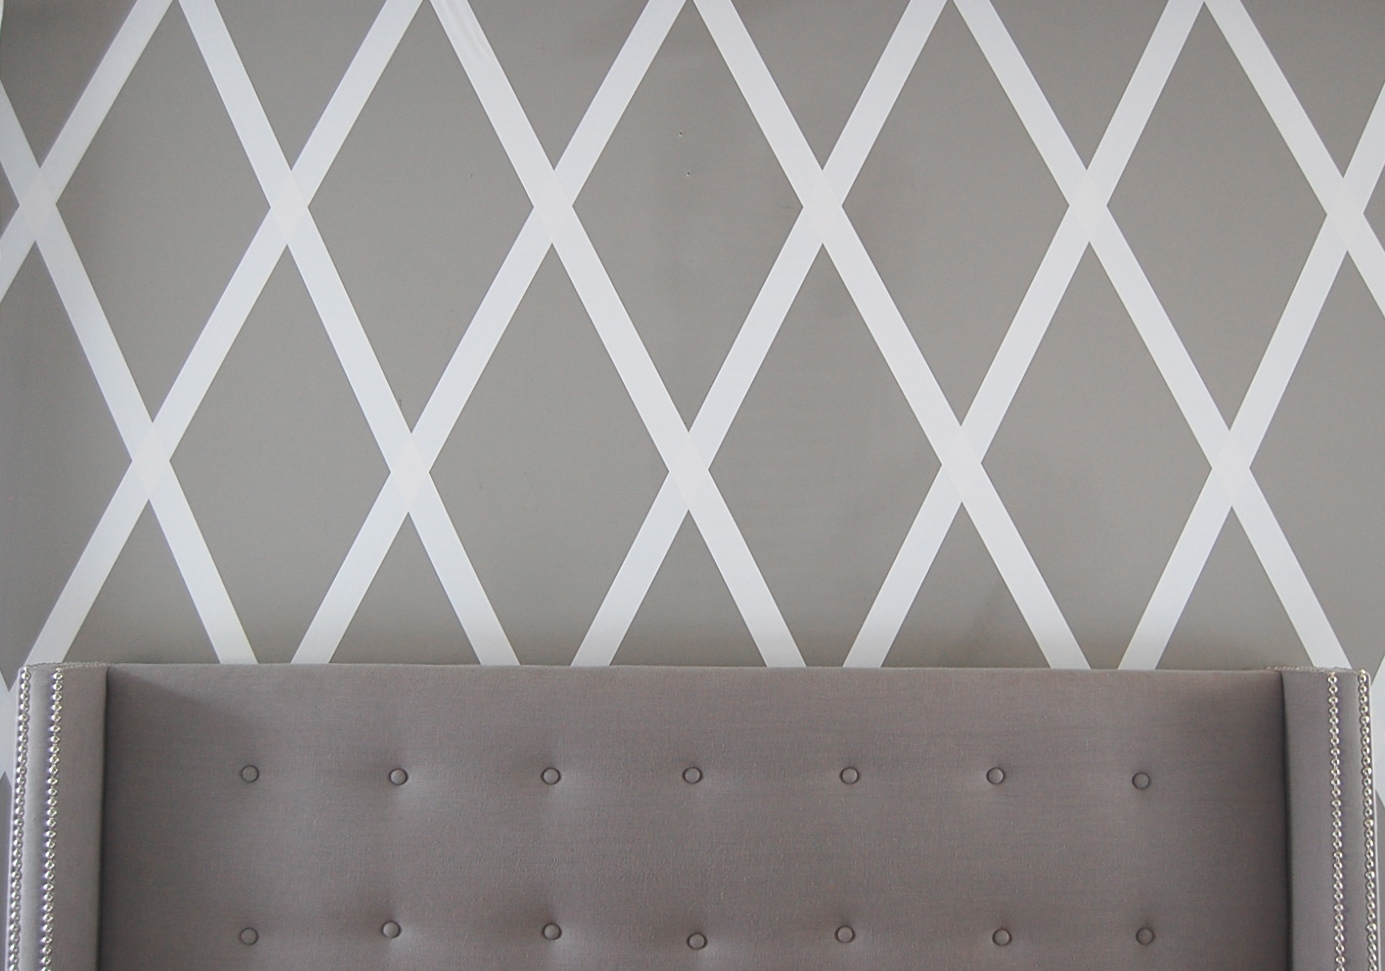 Wall Patterns With Tape Diy Masking Tape Wall Decor 1 Kathome